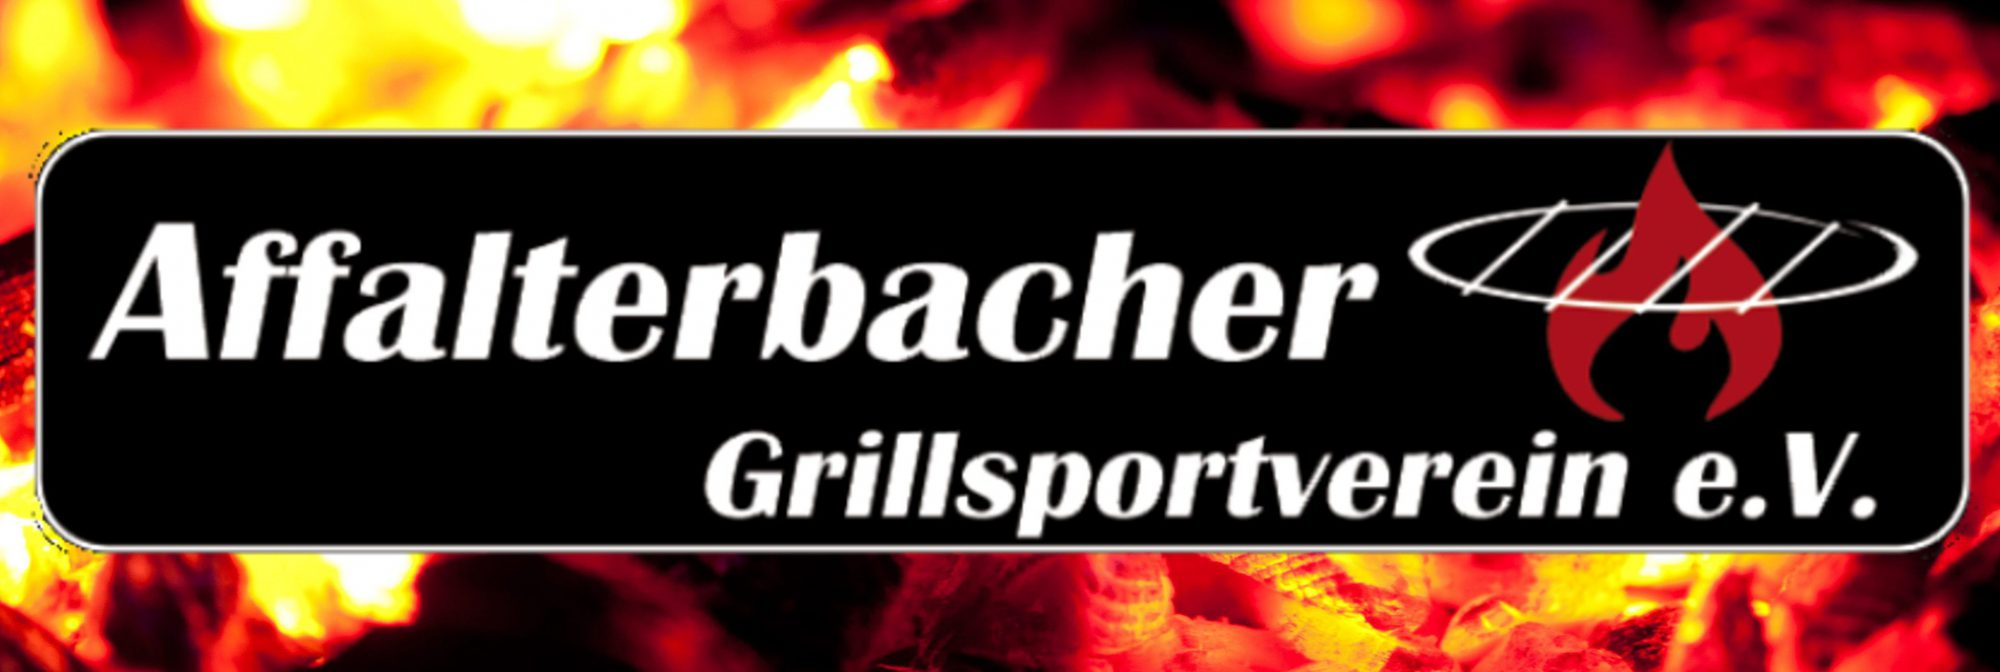 Grillsportverein Affalterbach